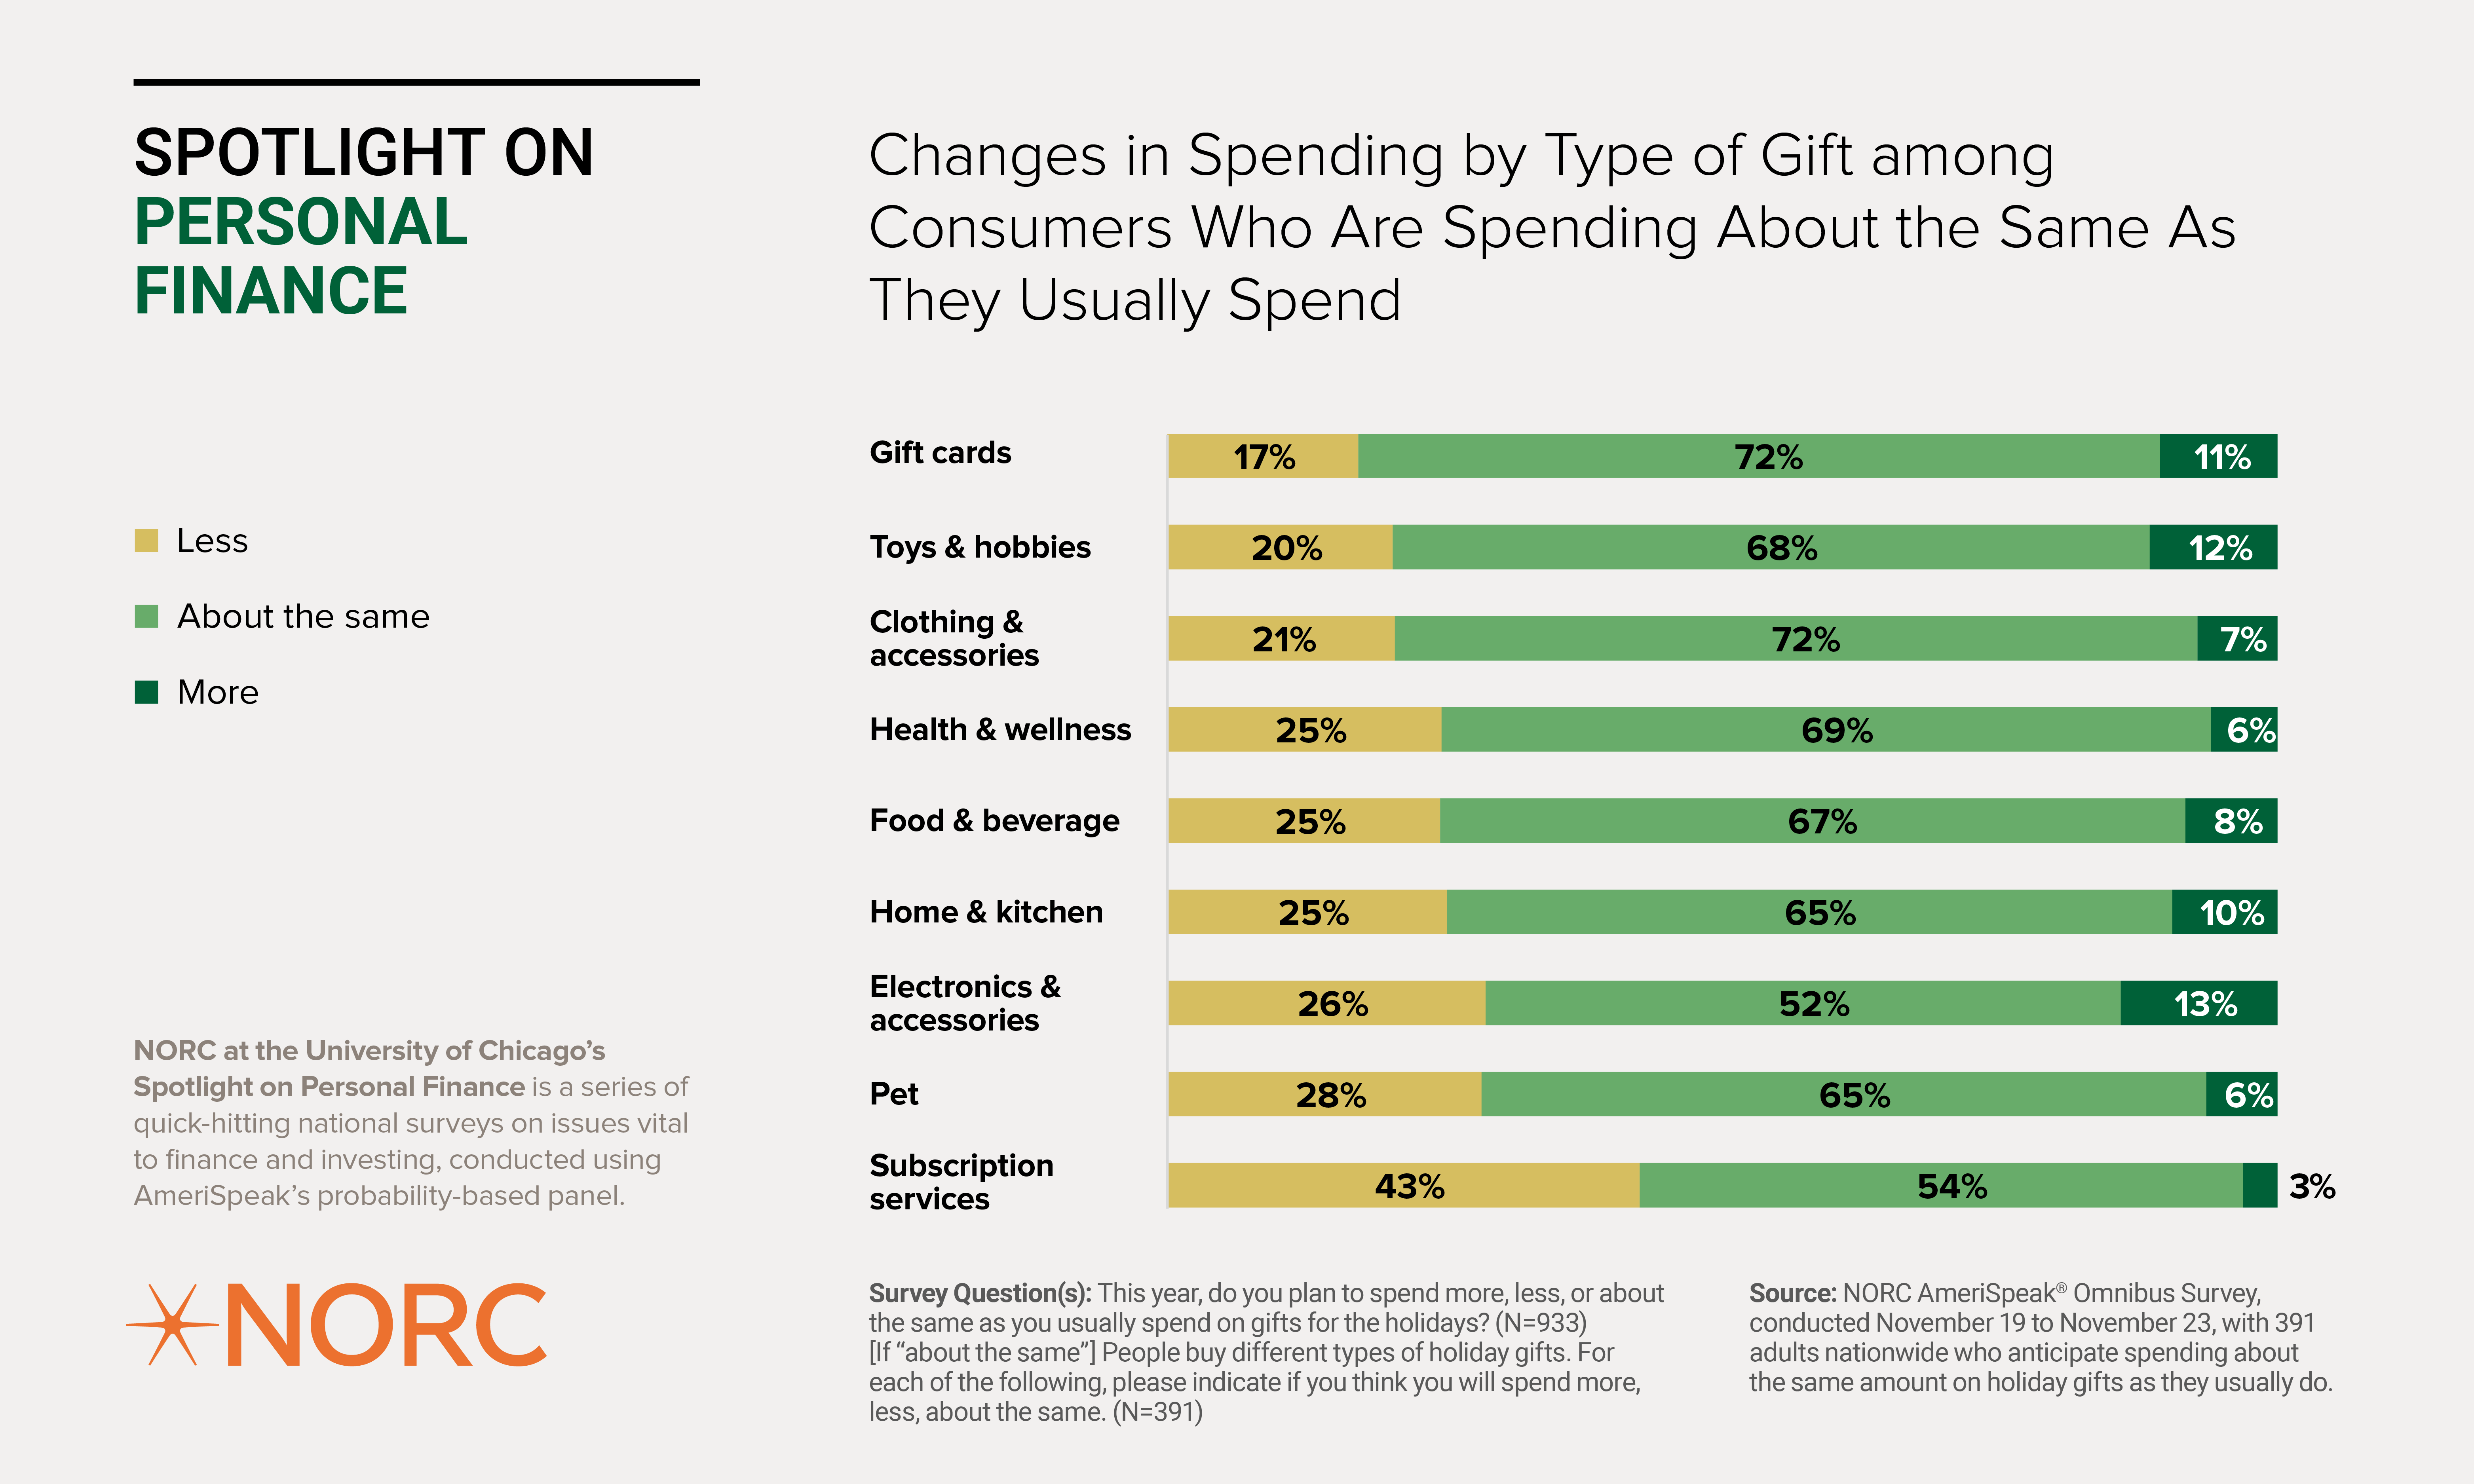 Changes in Spending by Type of Gift